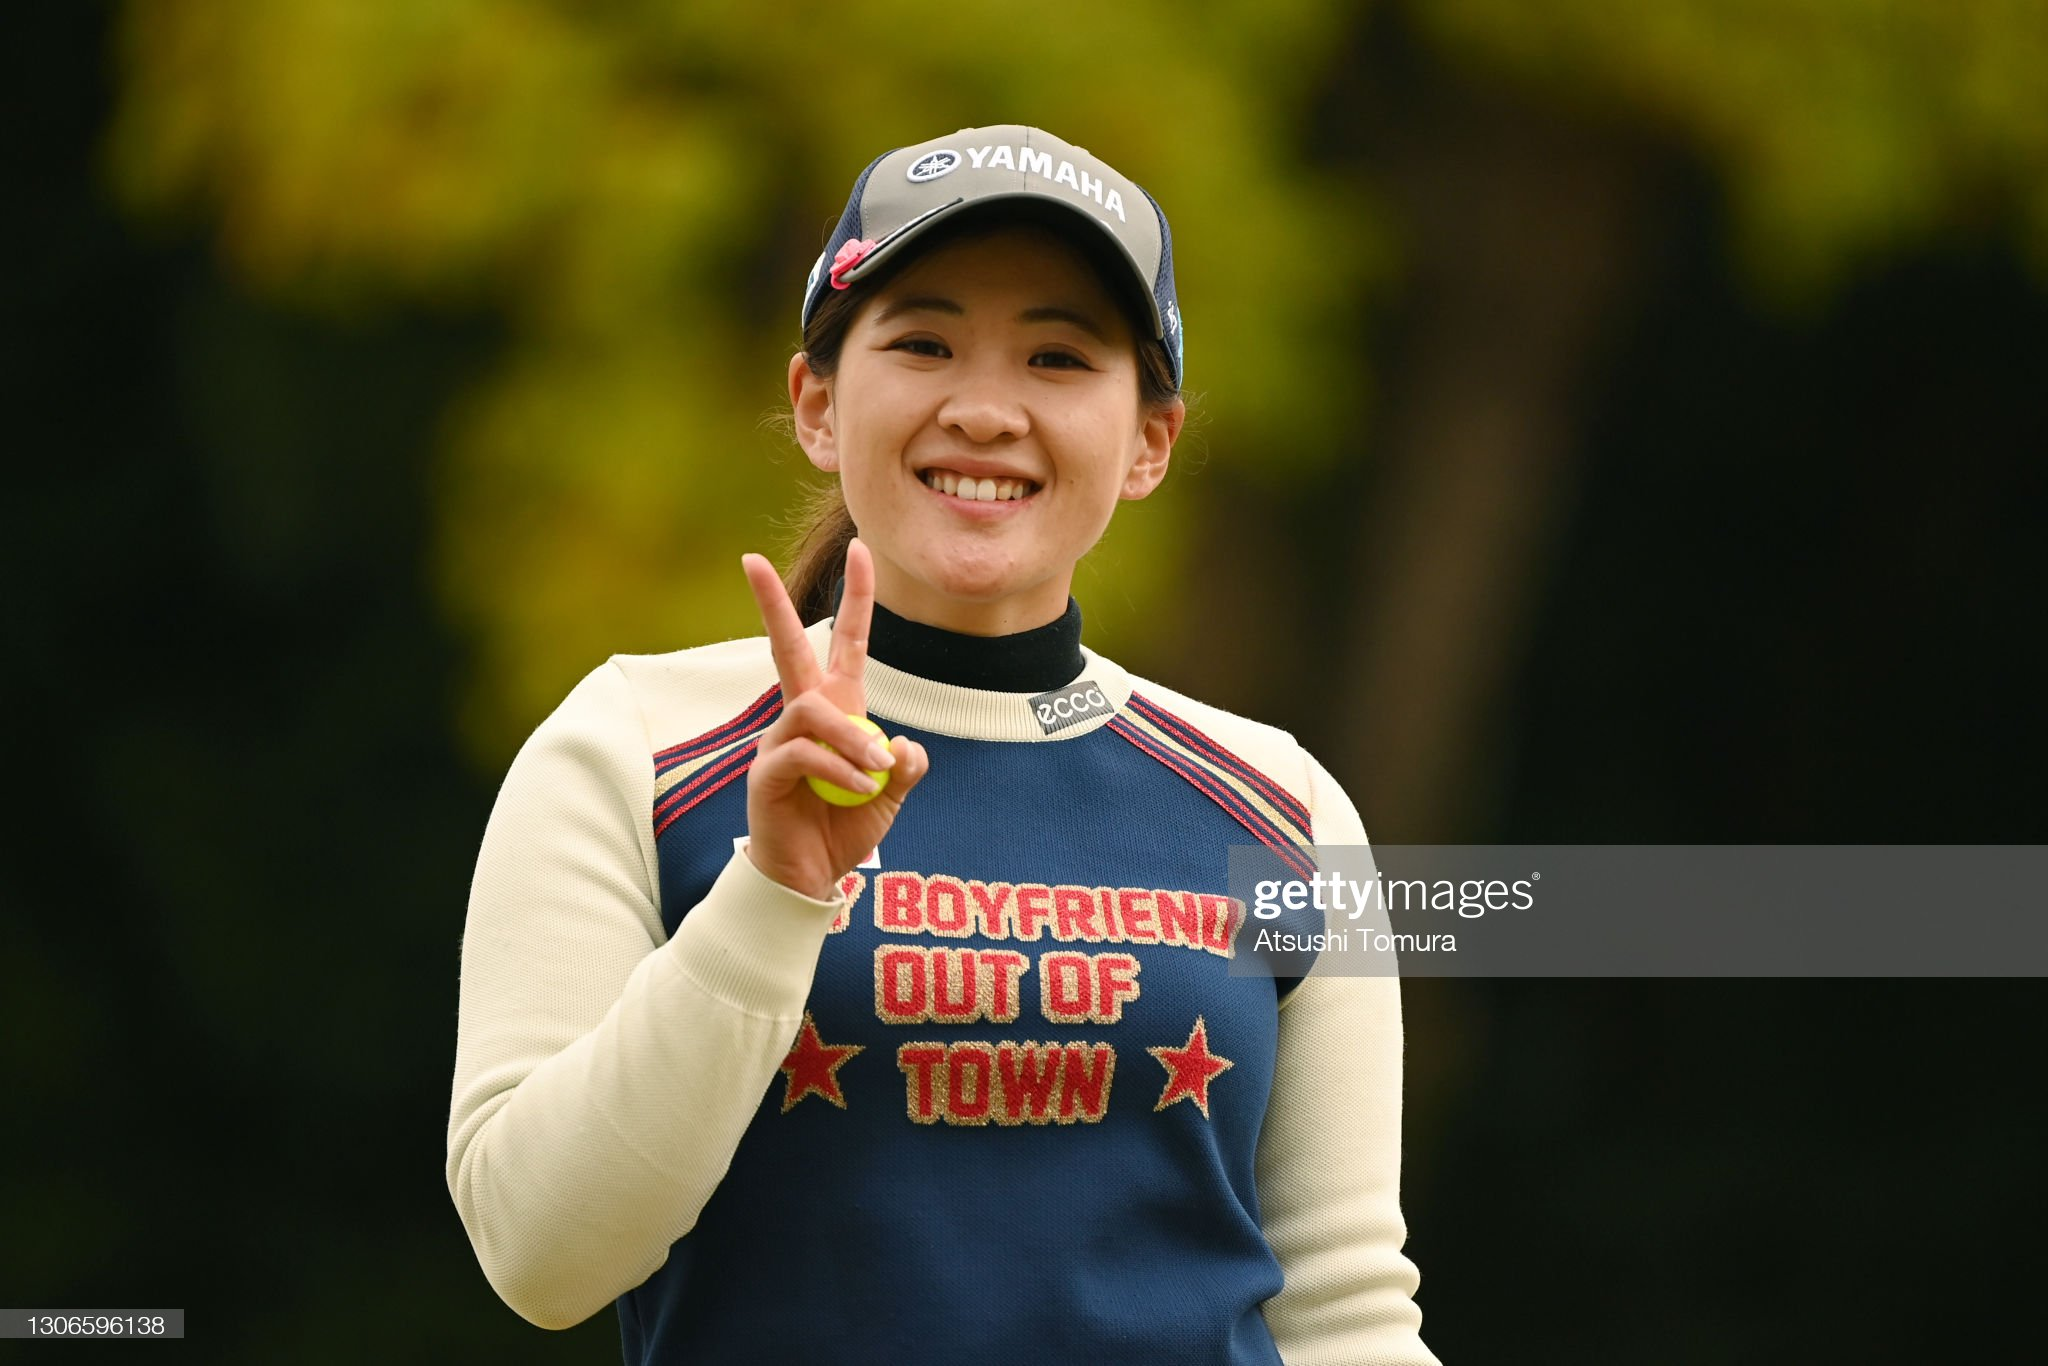 https://media.gettyimages.com/photos/kana-nagai-of-japan-poses-on-the-11th-green-during-the-first-round-of-picture-id1306596138?s=2048x2048